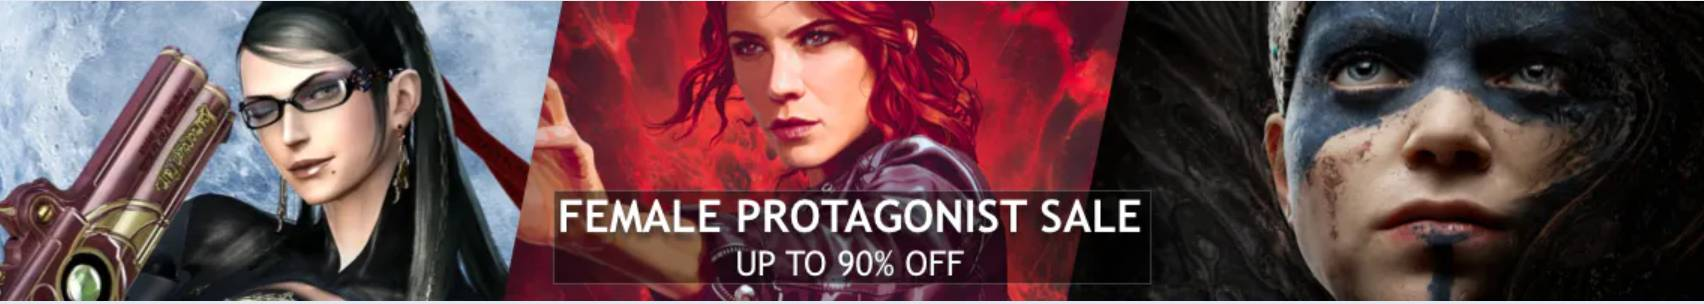 Female Protagonist Sale